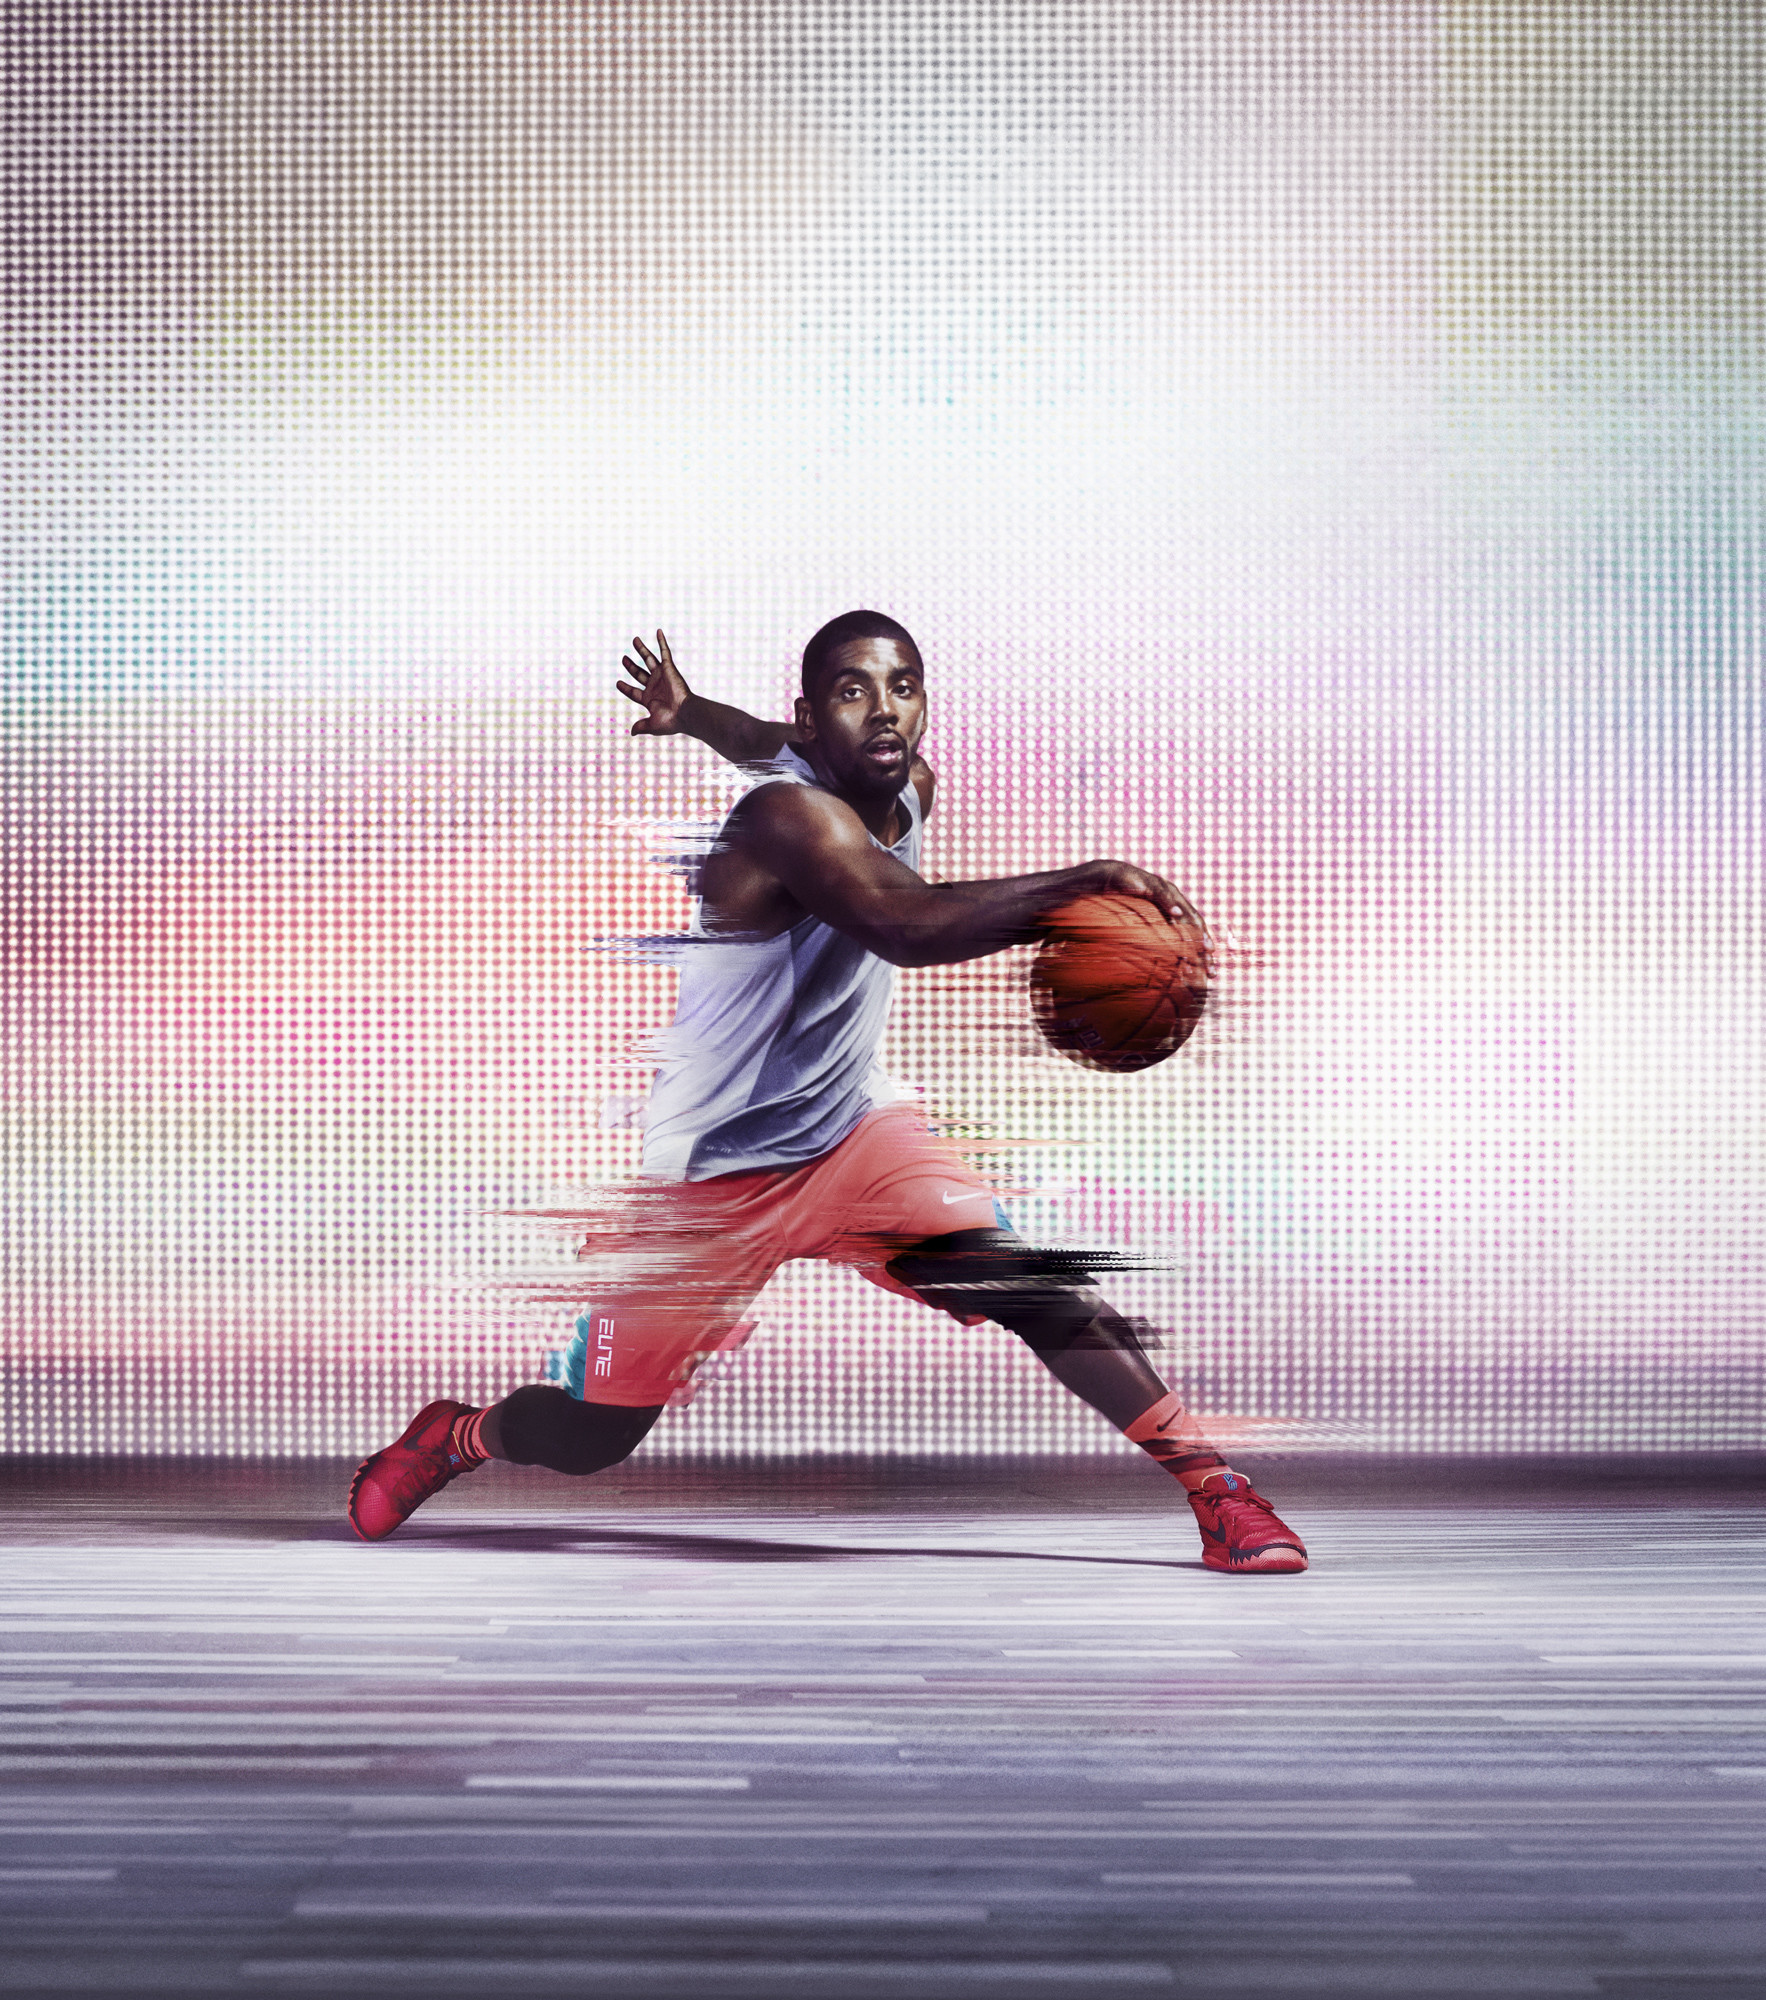 coole kyrie irving crossover - Kyrie Irving Nike Wallpaper - 1766x2000 -  WallpaperTip